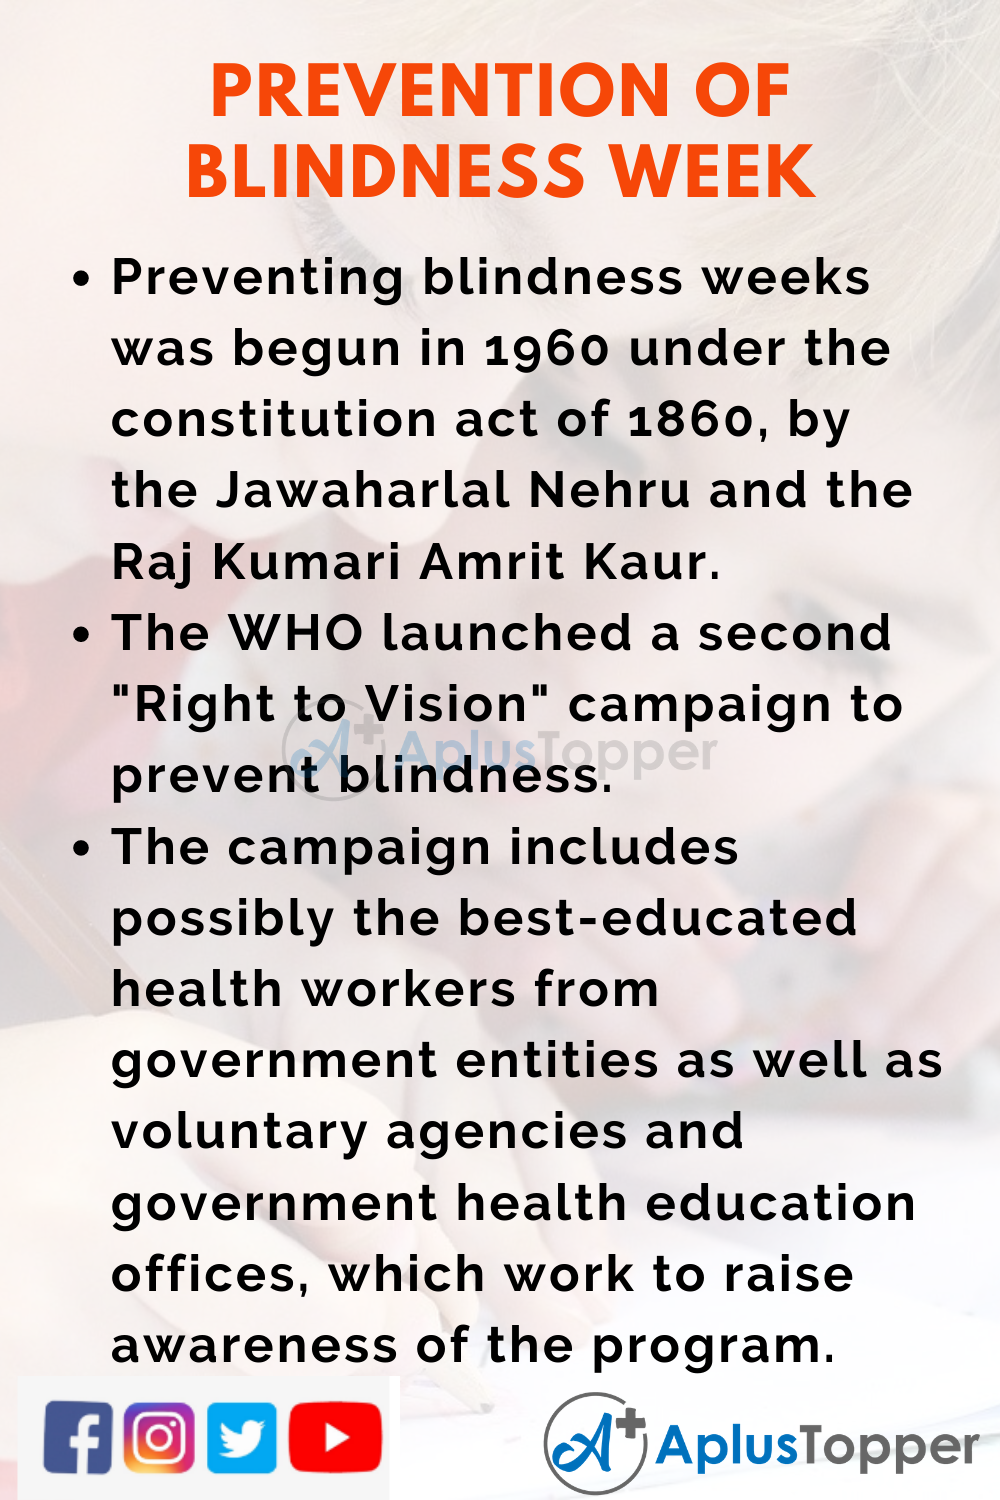 10 lines for Prevention of Blindness Week